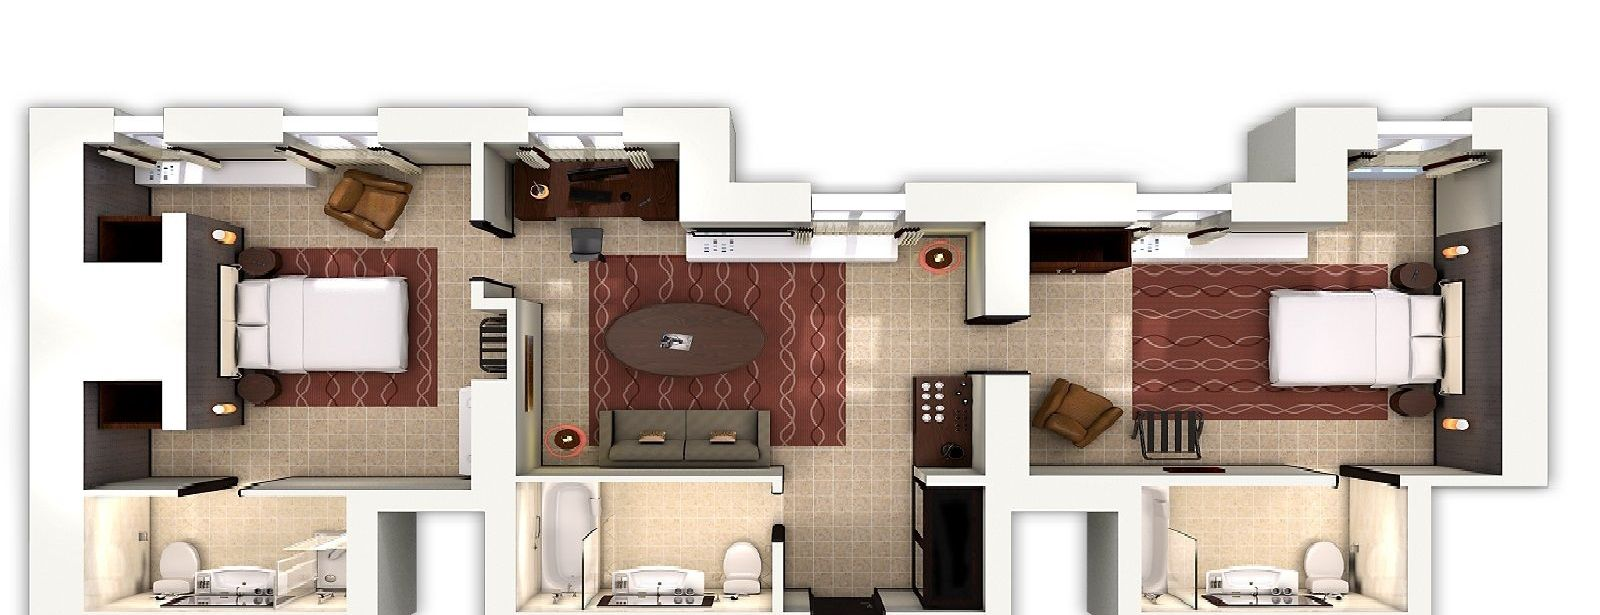 Grand Premium Suite - floorplan